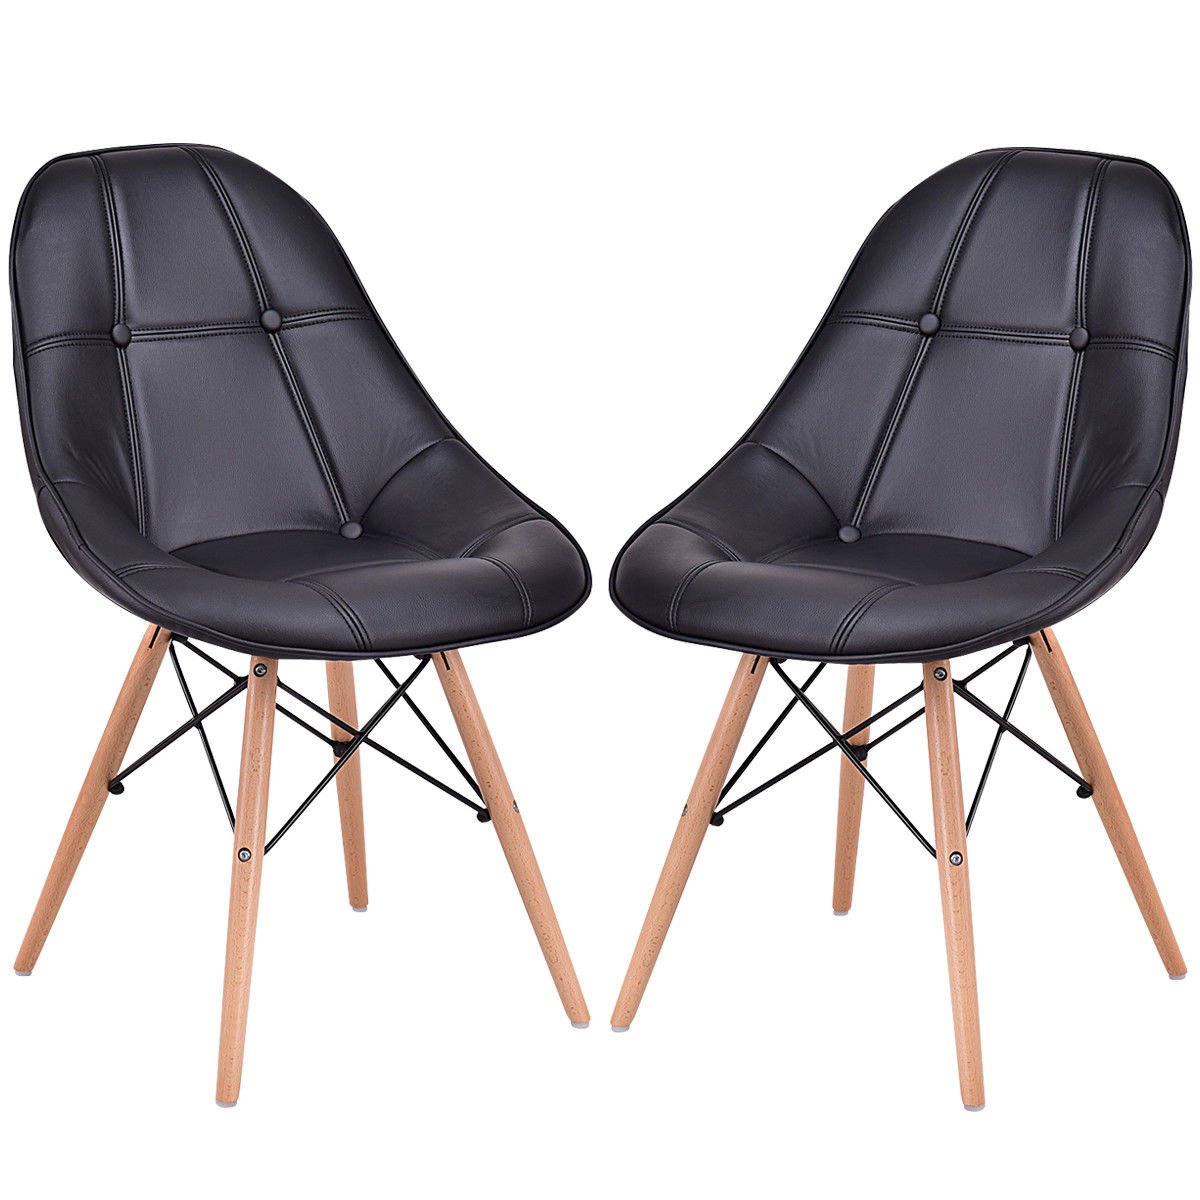 Giantex Set of 2 Dining Side Chair Modern Armless PU Leather Seat with Wood Legs Black Leisure Dining Chairs HW56505BK все цены